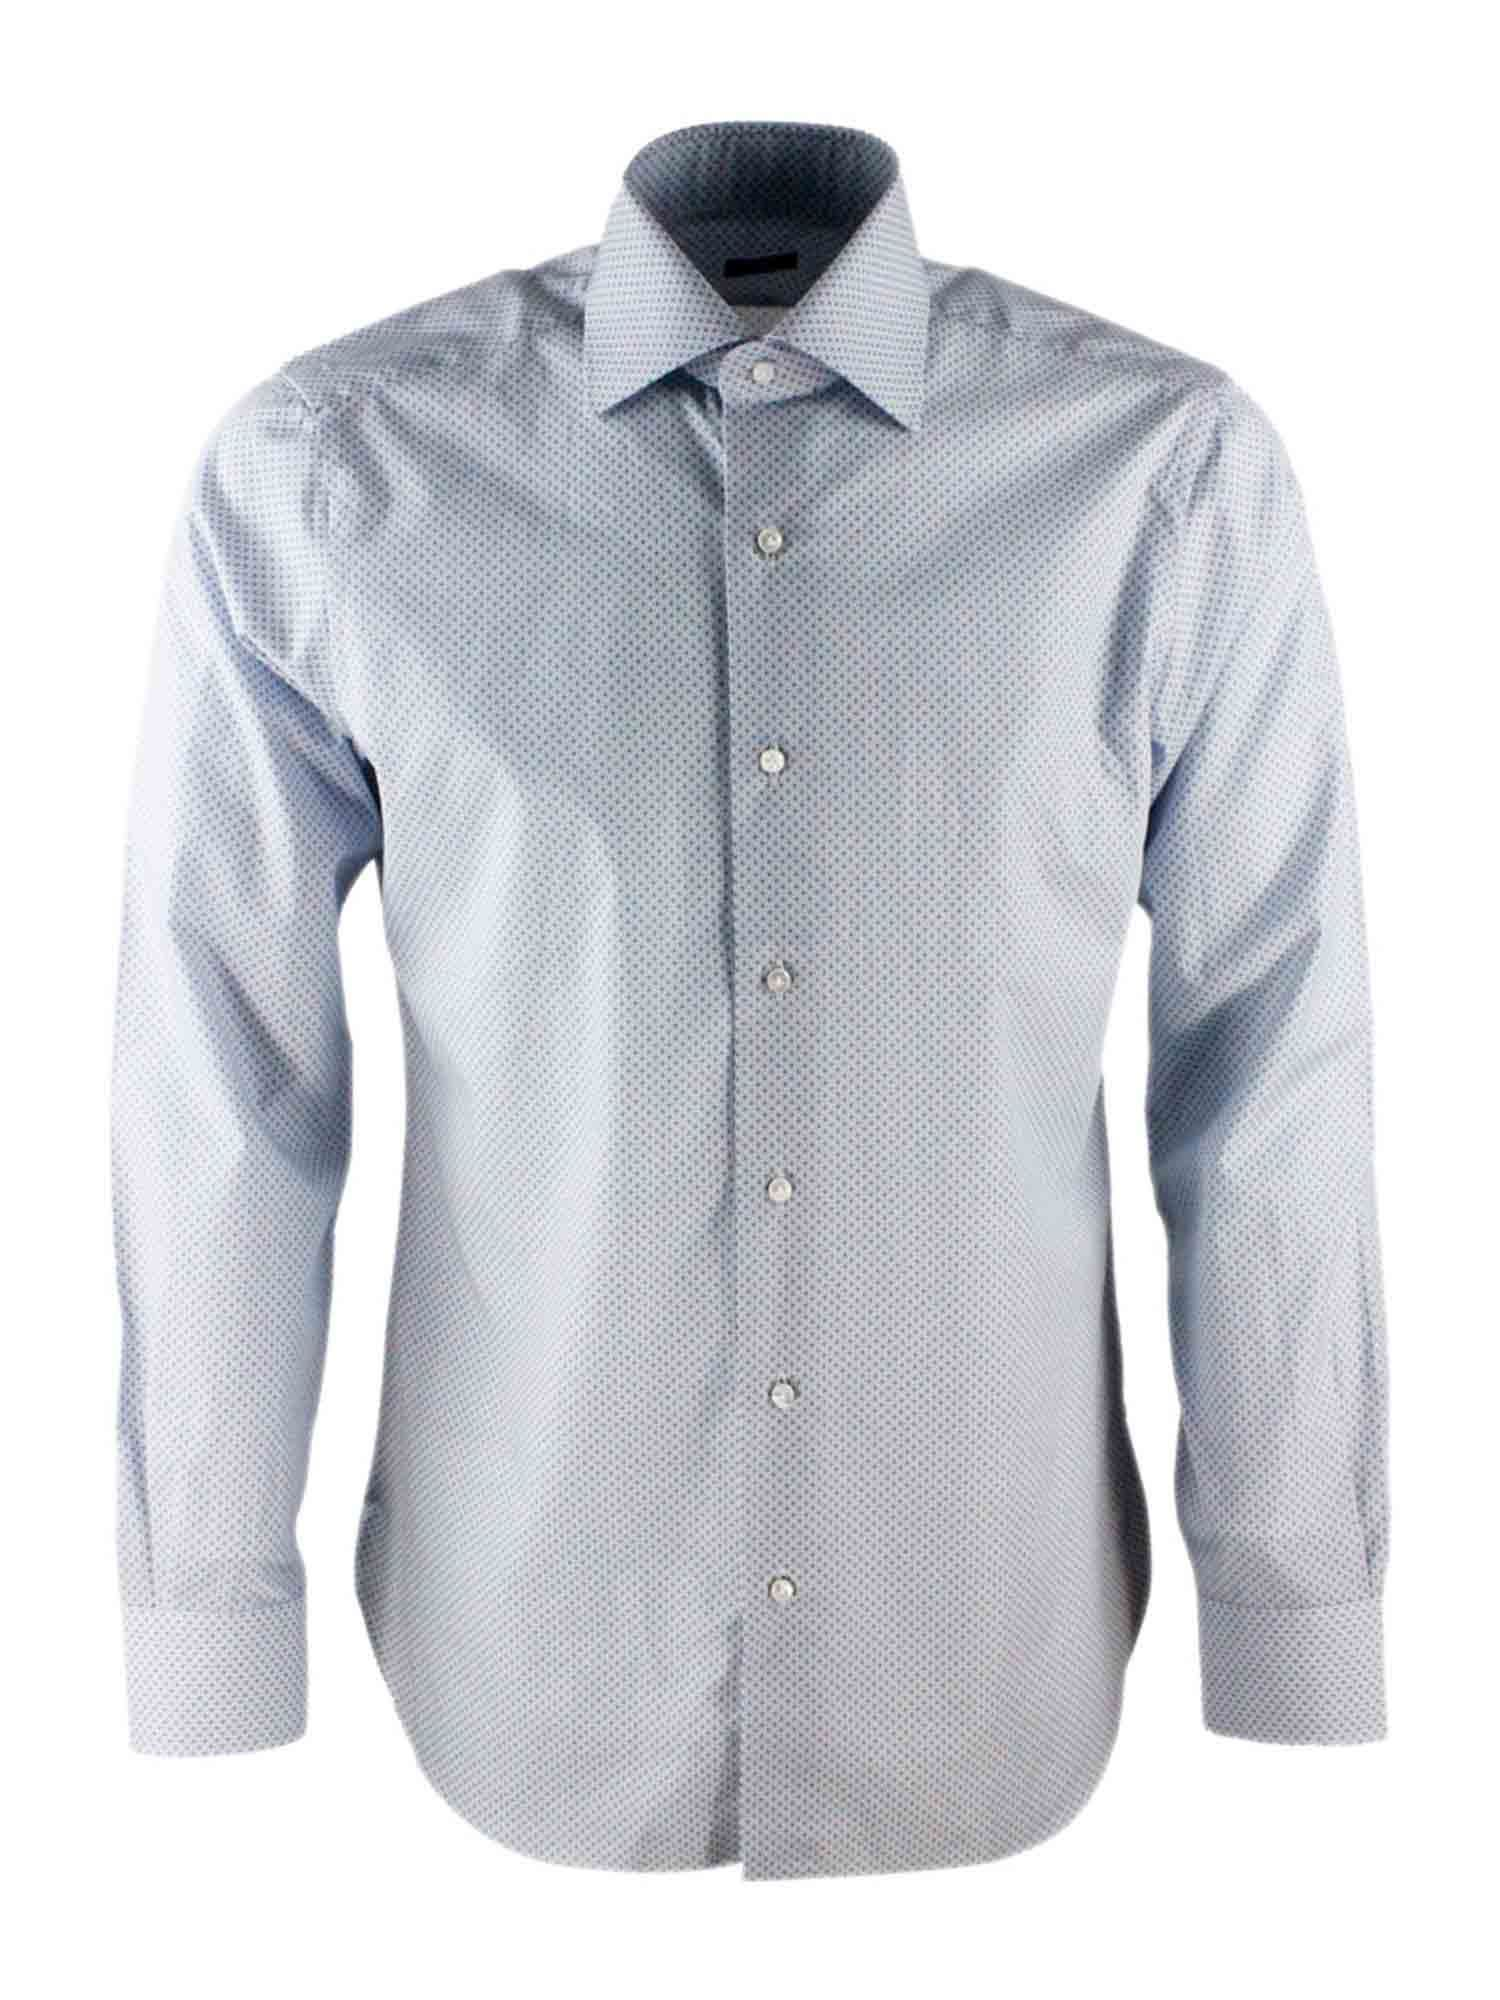 Barba SQUARE AND CIRCLES SHIRT IN LIGHT BLUE